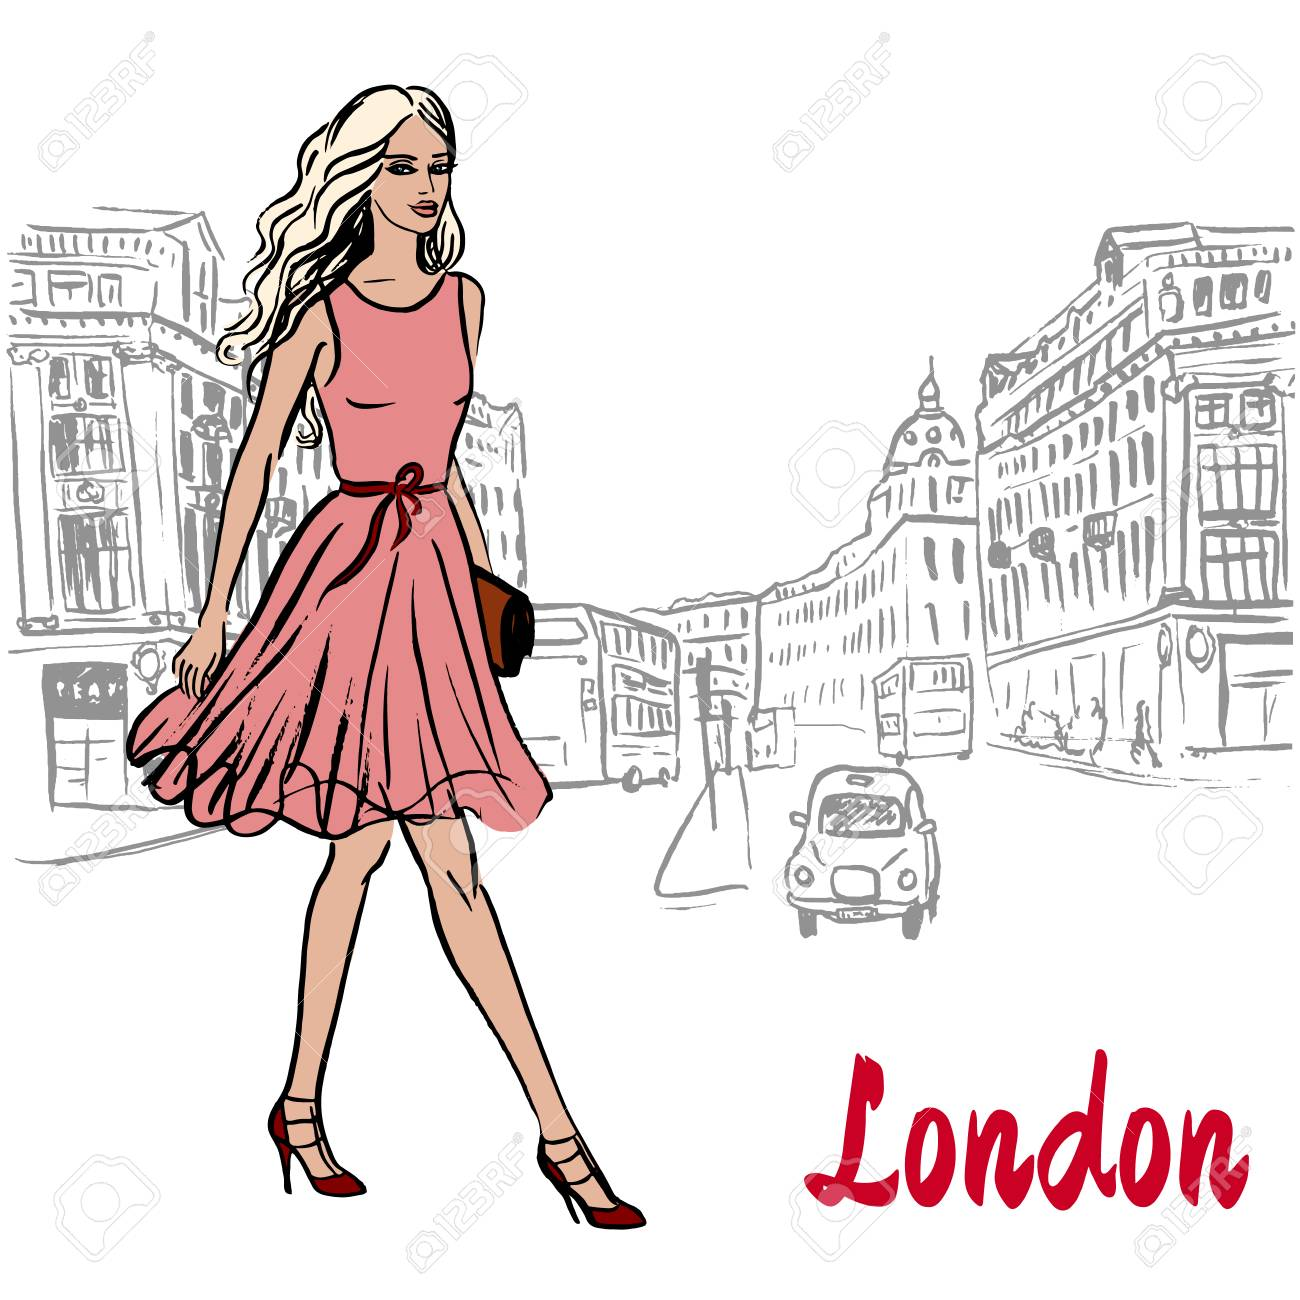 Image result for free cartoon images of a woman walking around london